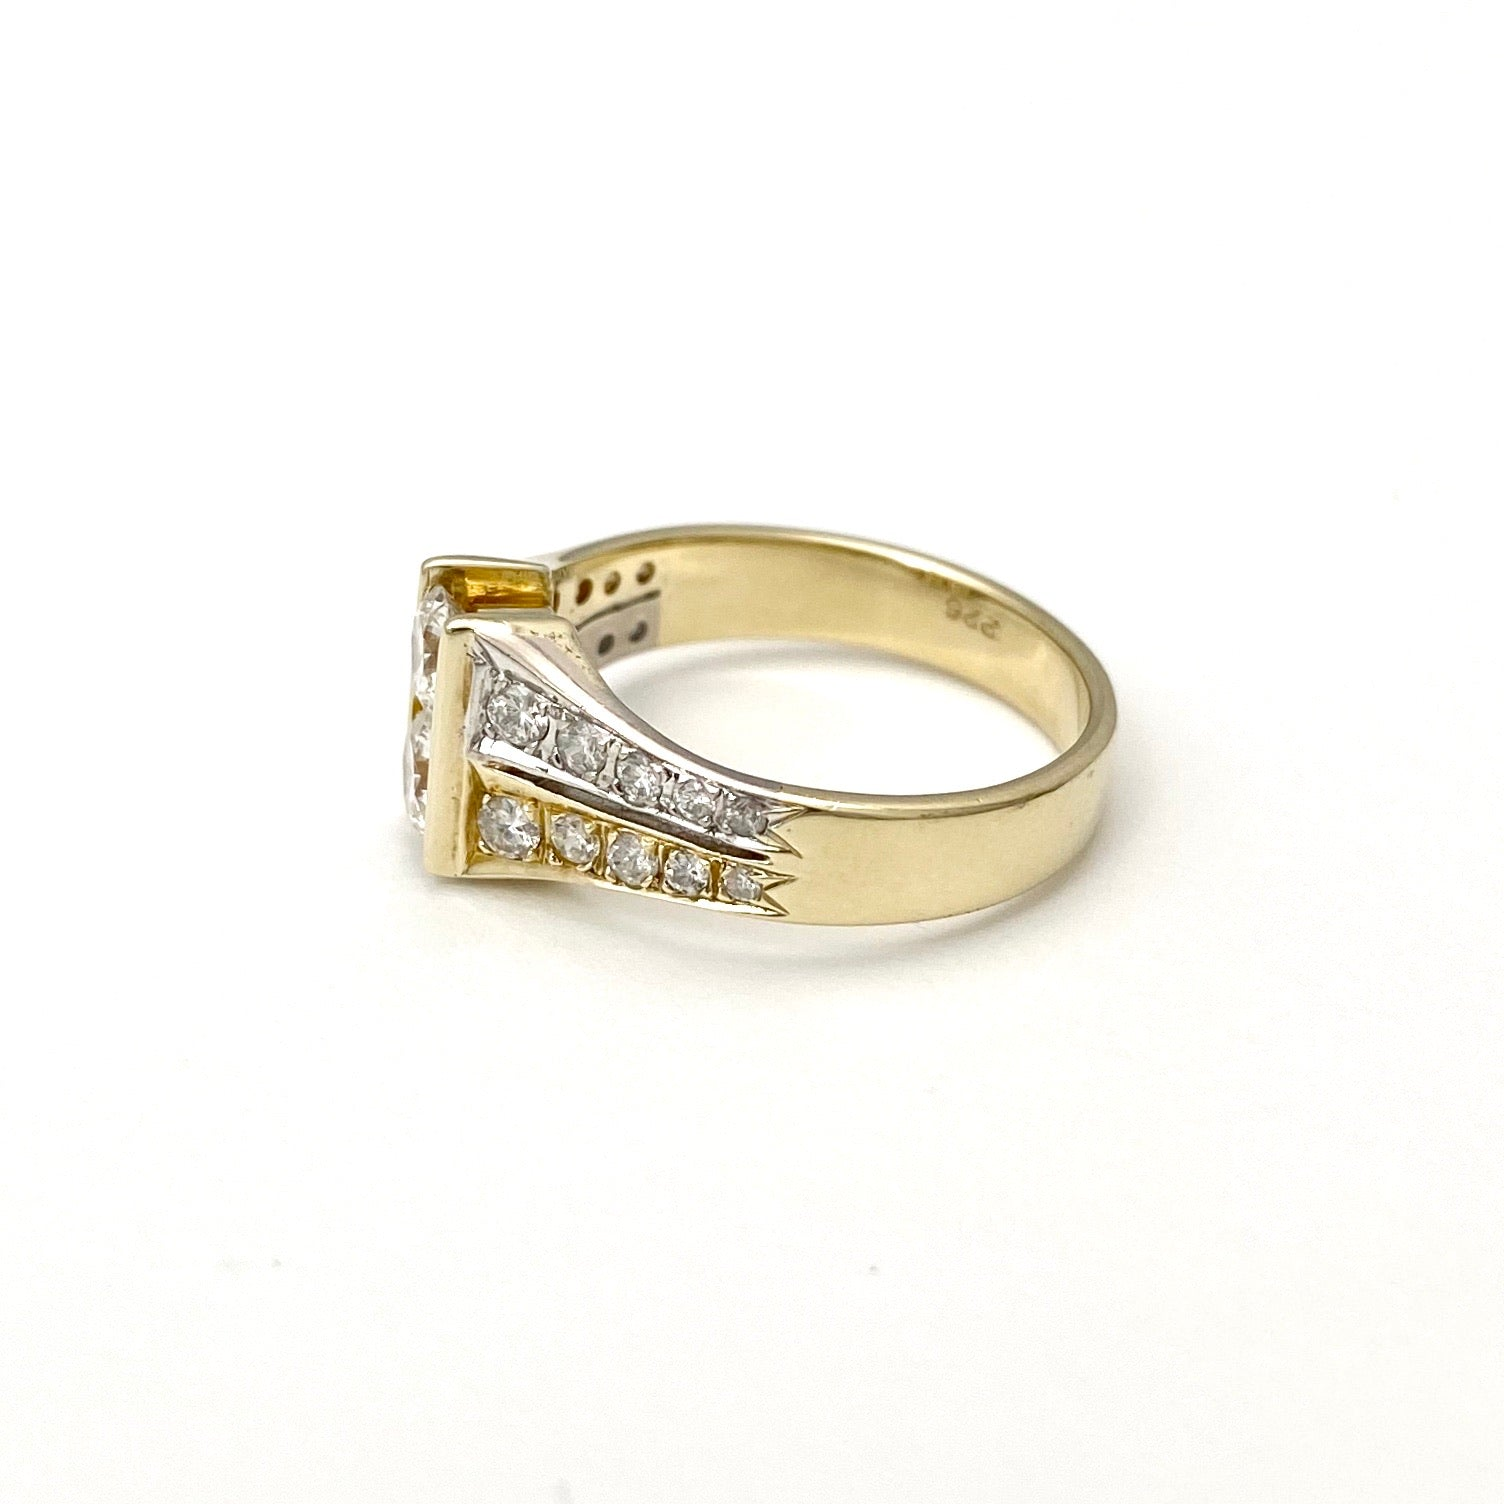 14K Yellow Gold Fancy Design Diamond Cocktail Ring